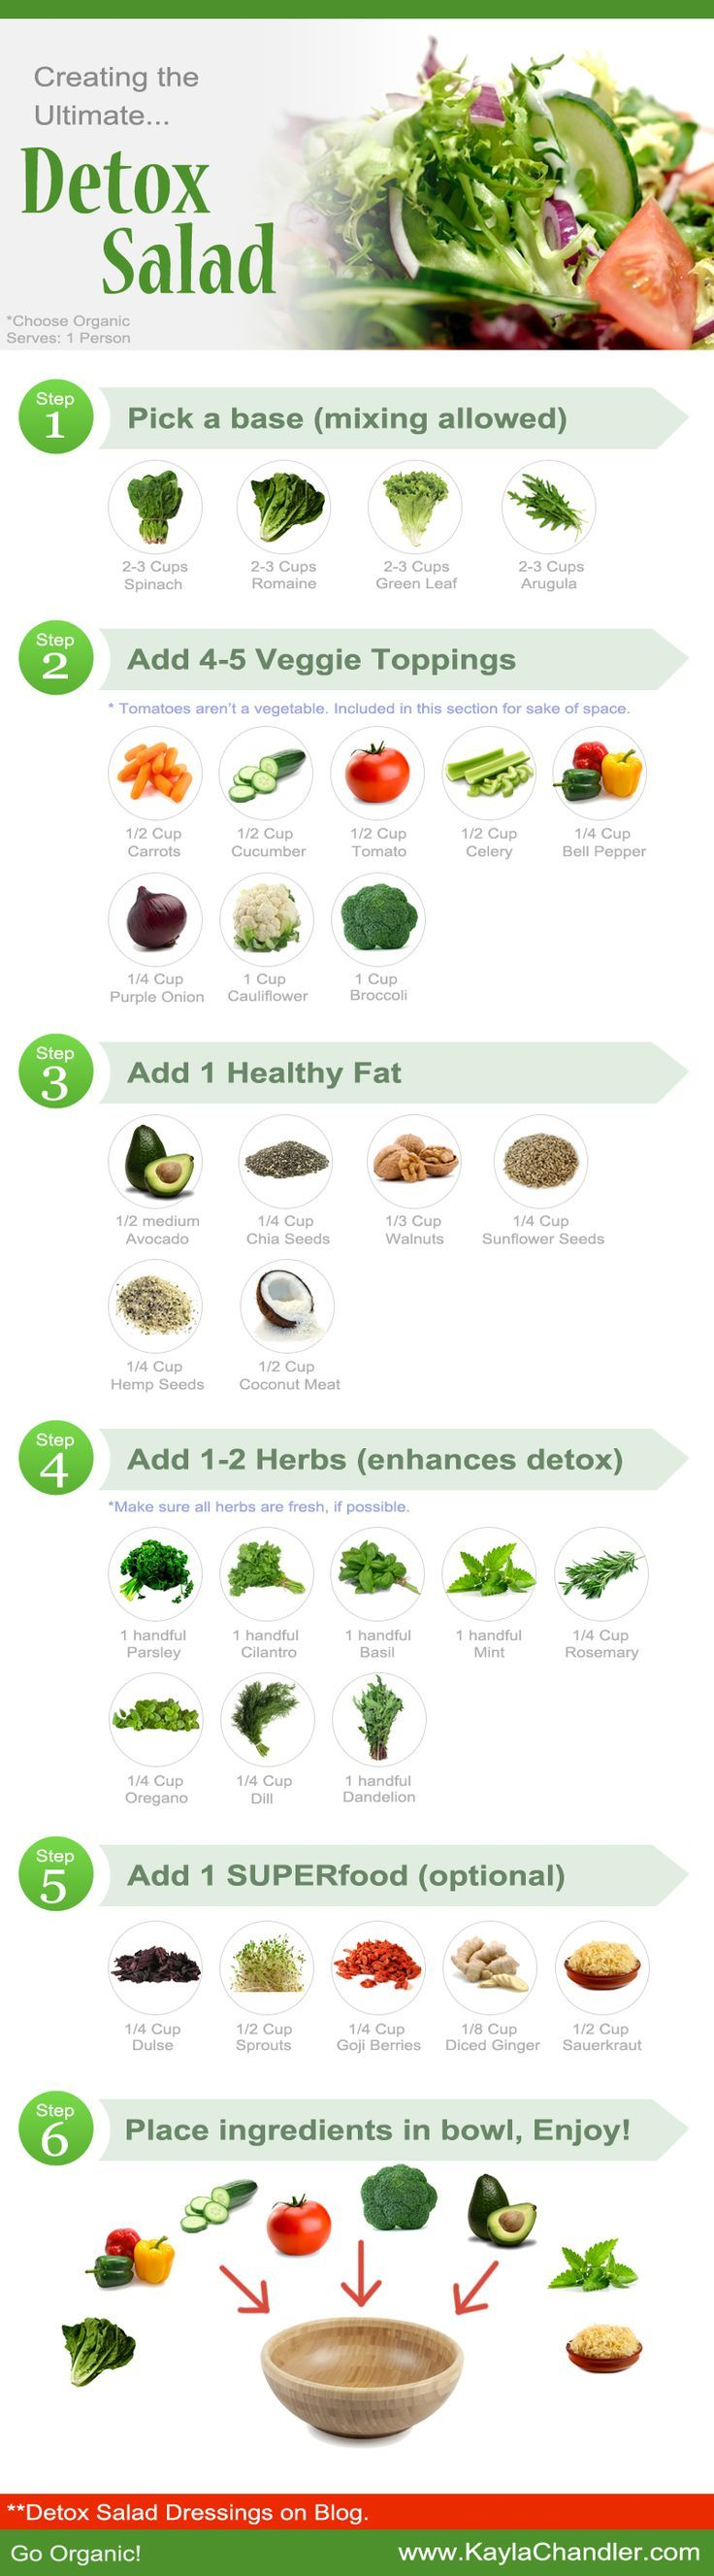 Creating the Ultimate Detox Salad.. plus DIY Healthy Salad Dressings included. #detox #salads #saladdressings